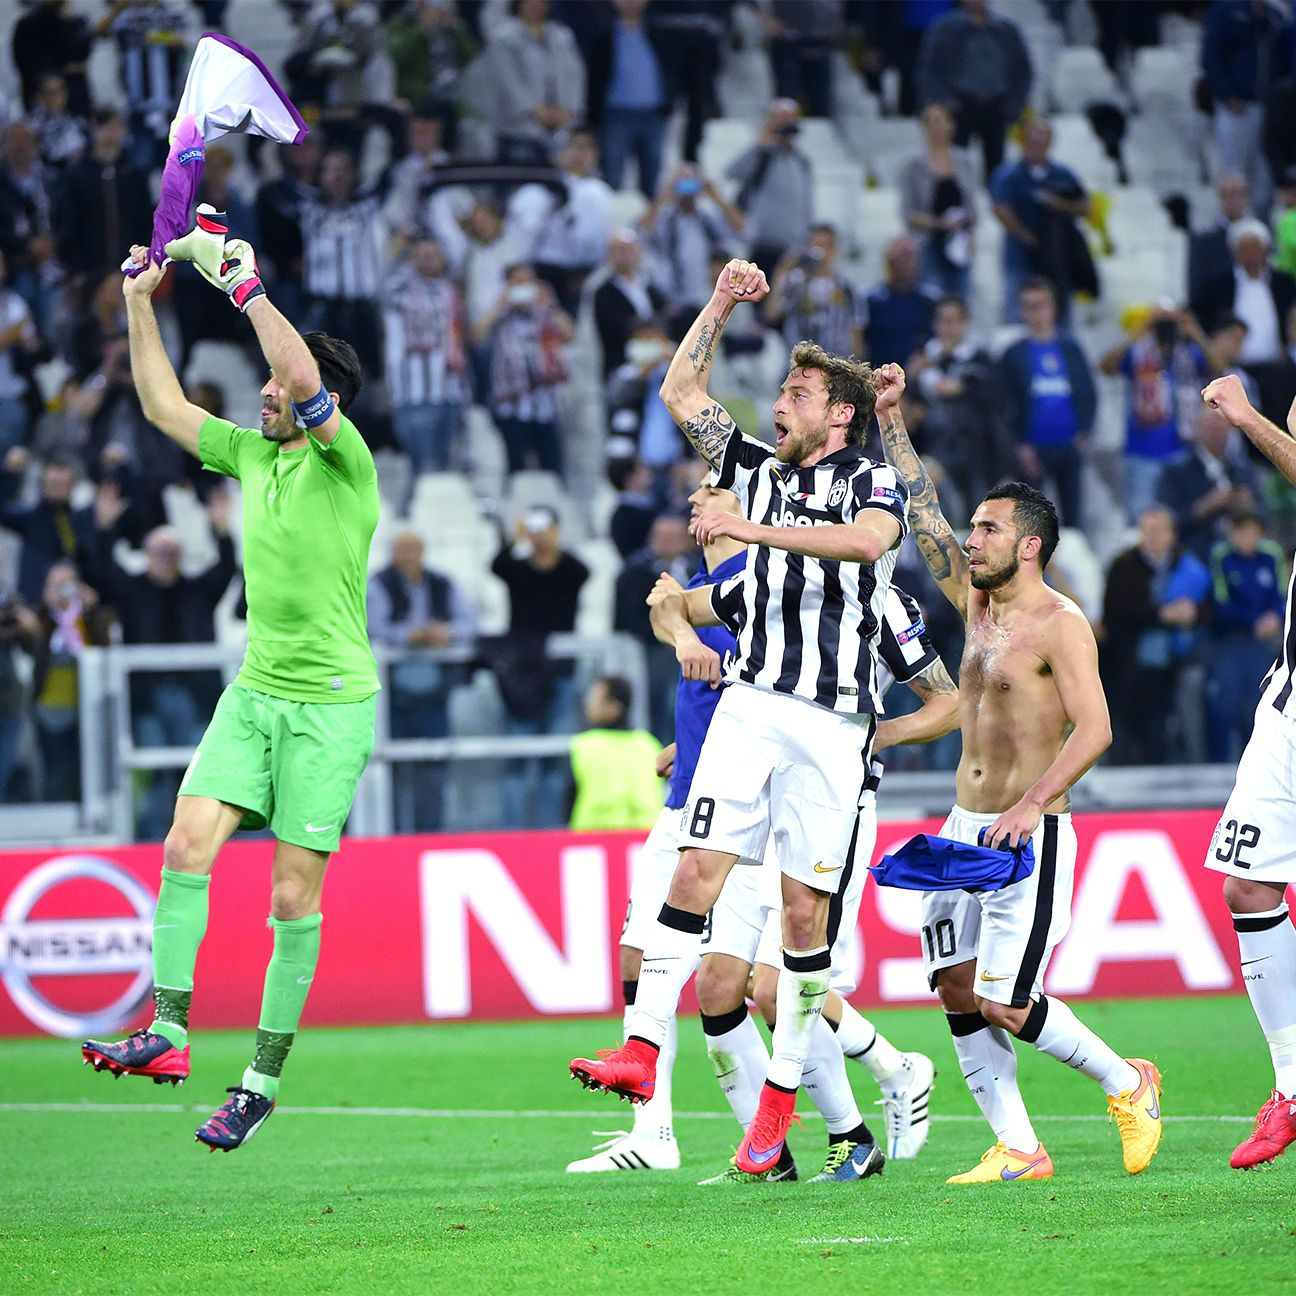 Juventus' improvement over the course of the 90 minutes helped them secure the 1-0 win over Monaco.